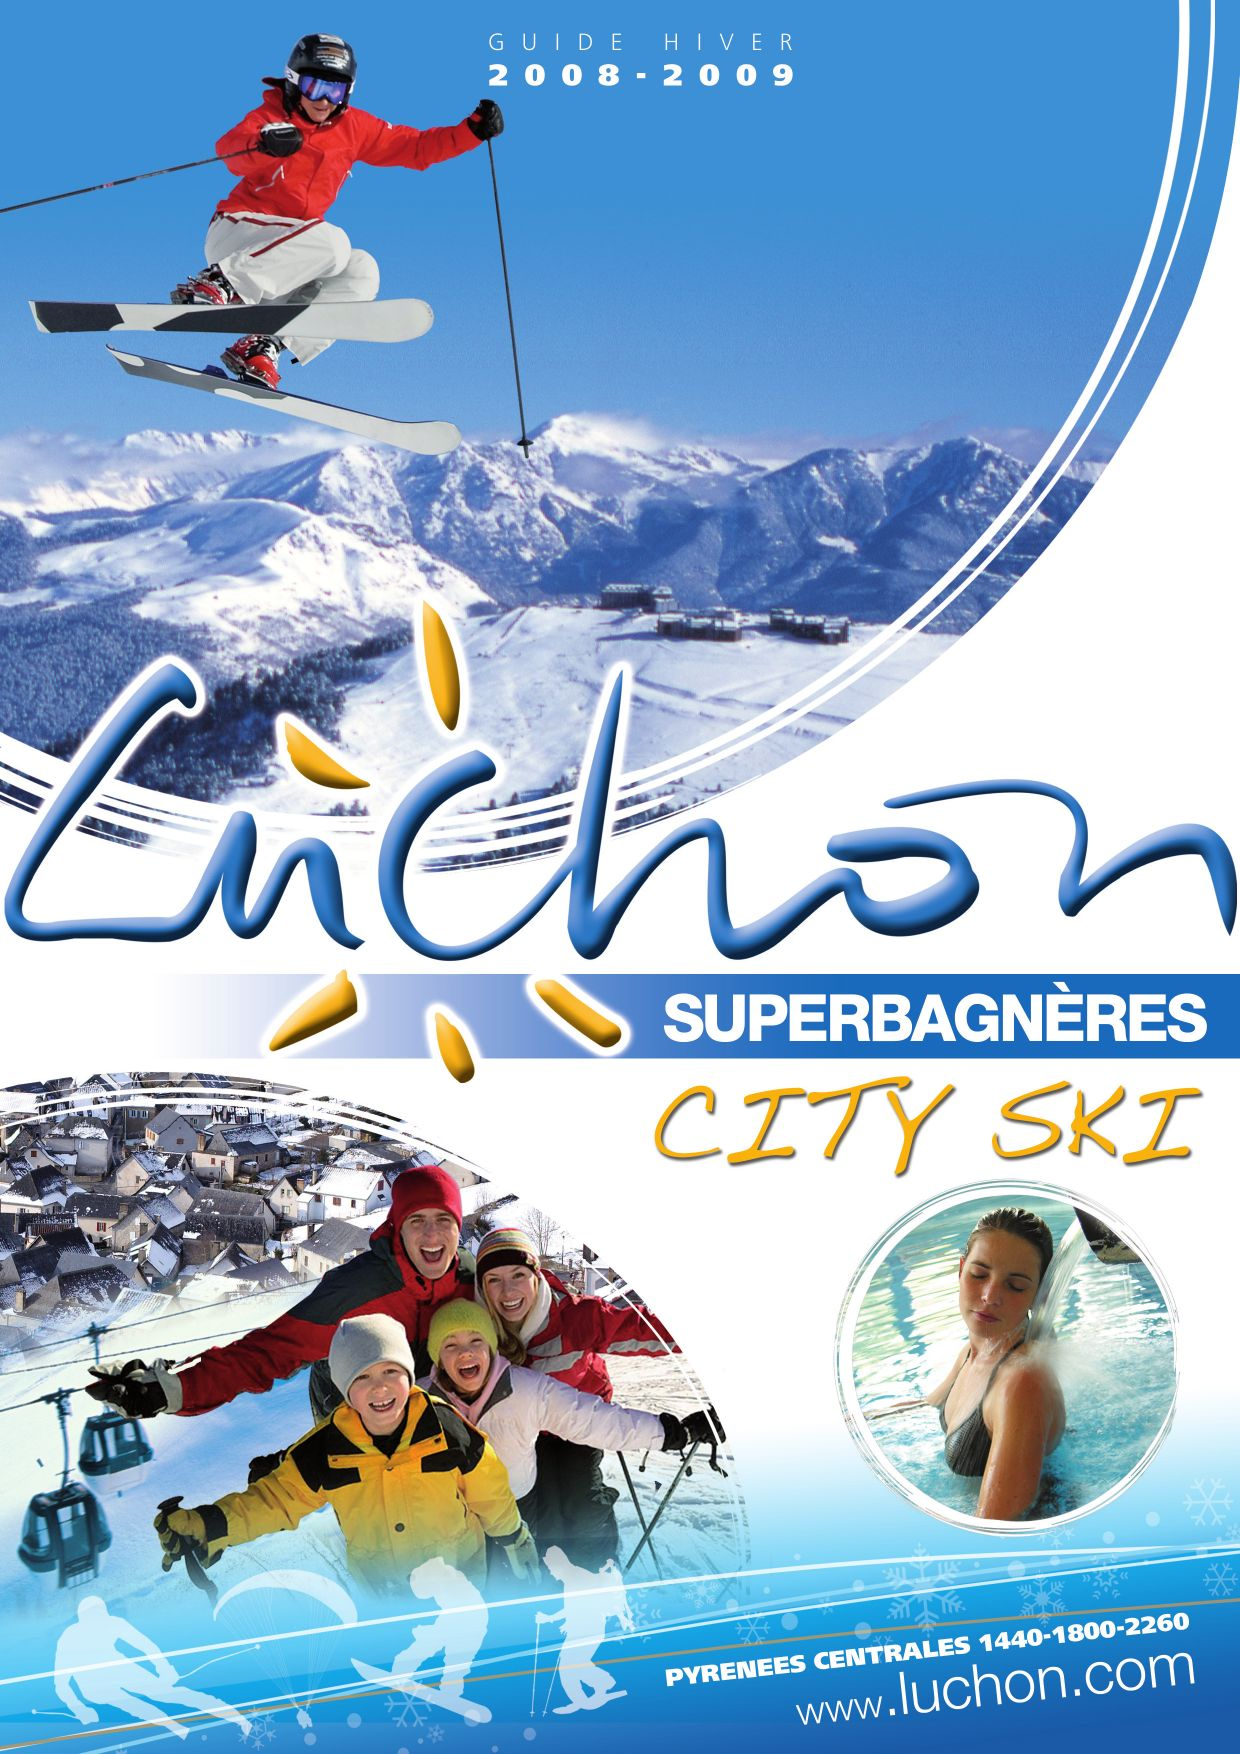 Issuu luchon superbagn res city ski winter 2008 2009 by office de tourisme de luchon - Office de tourisme luchon ...